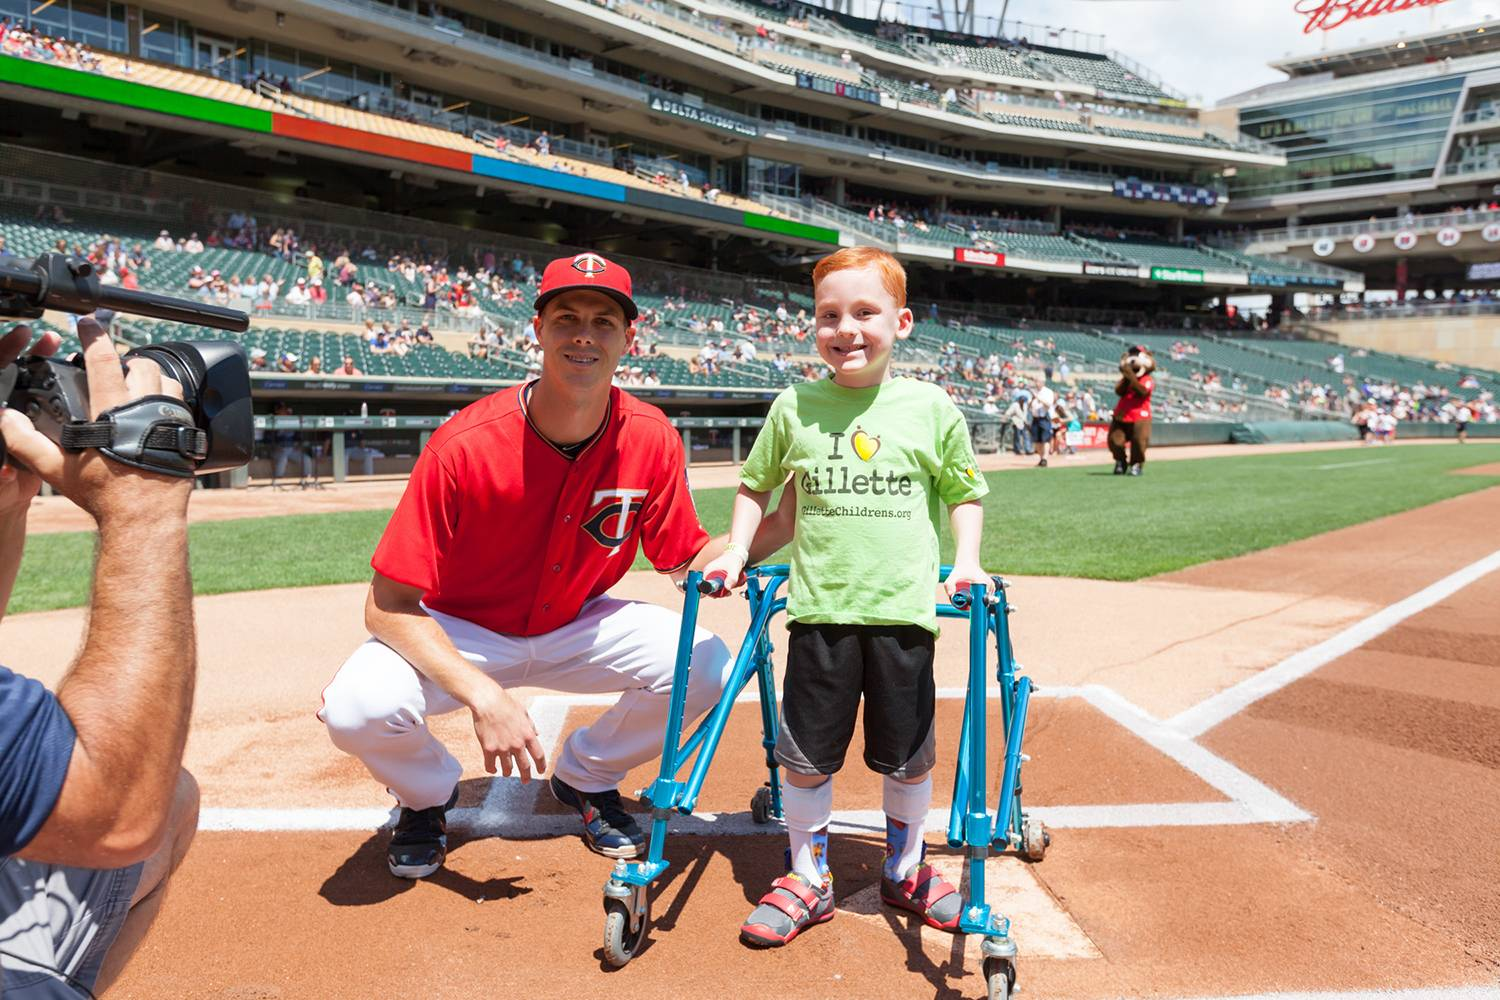 Cameron and Twins pitcher Taylor Rogers.